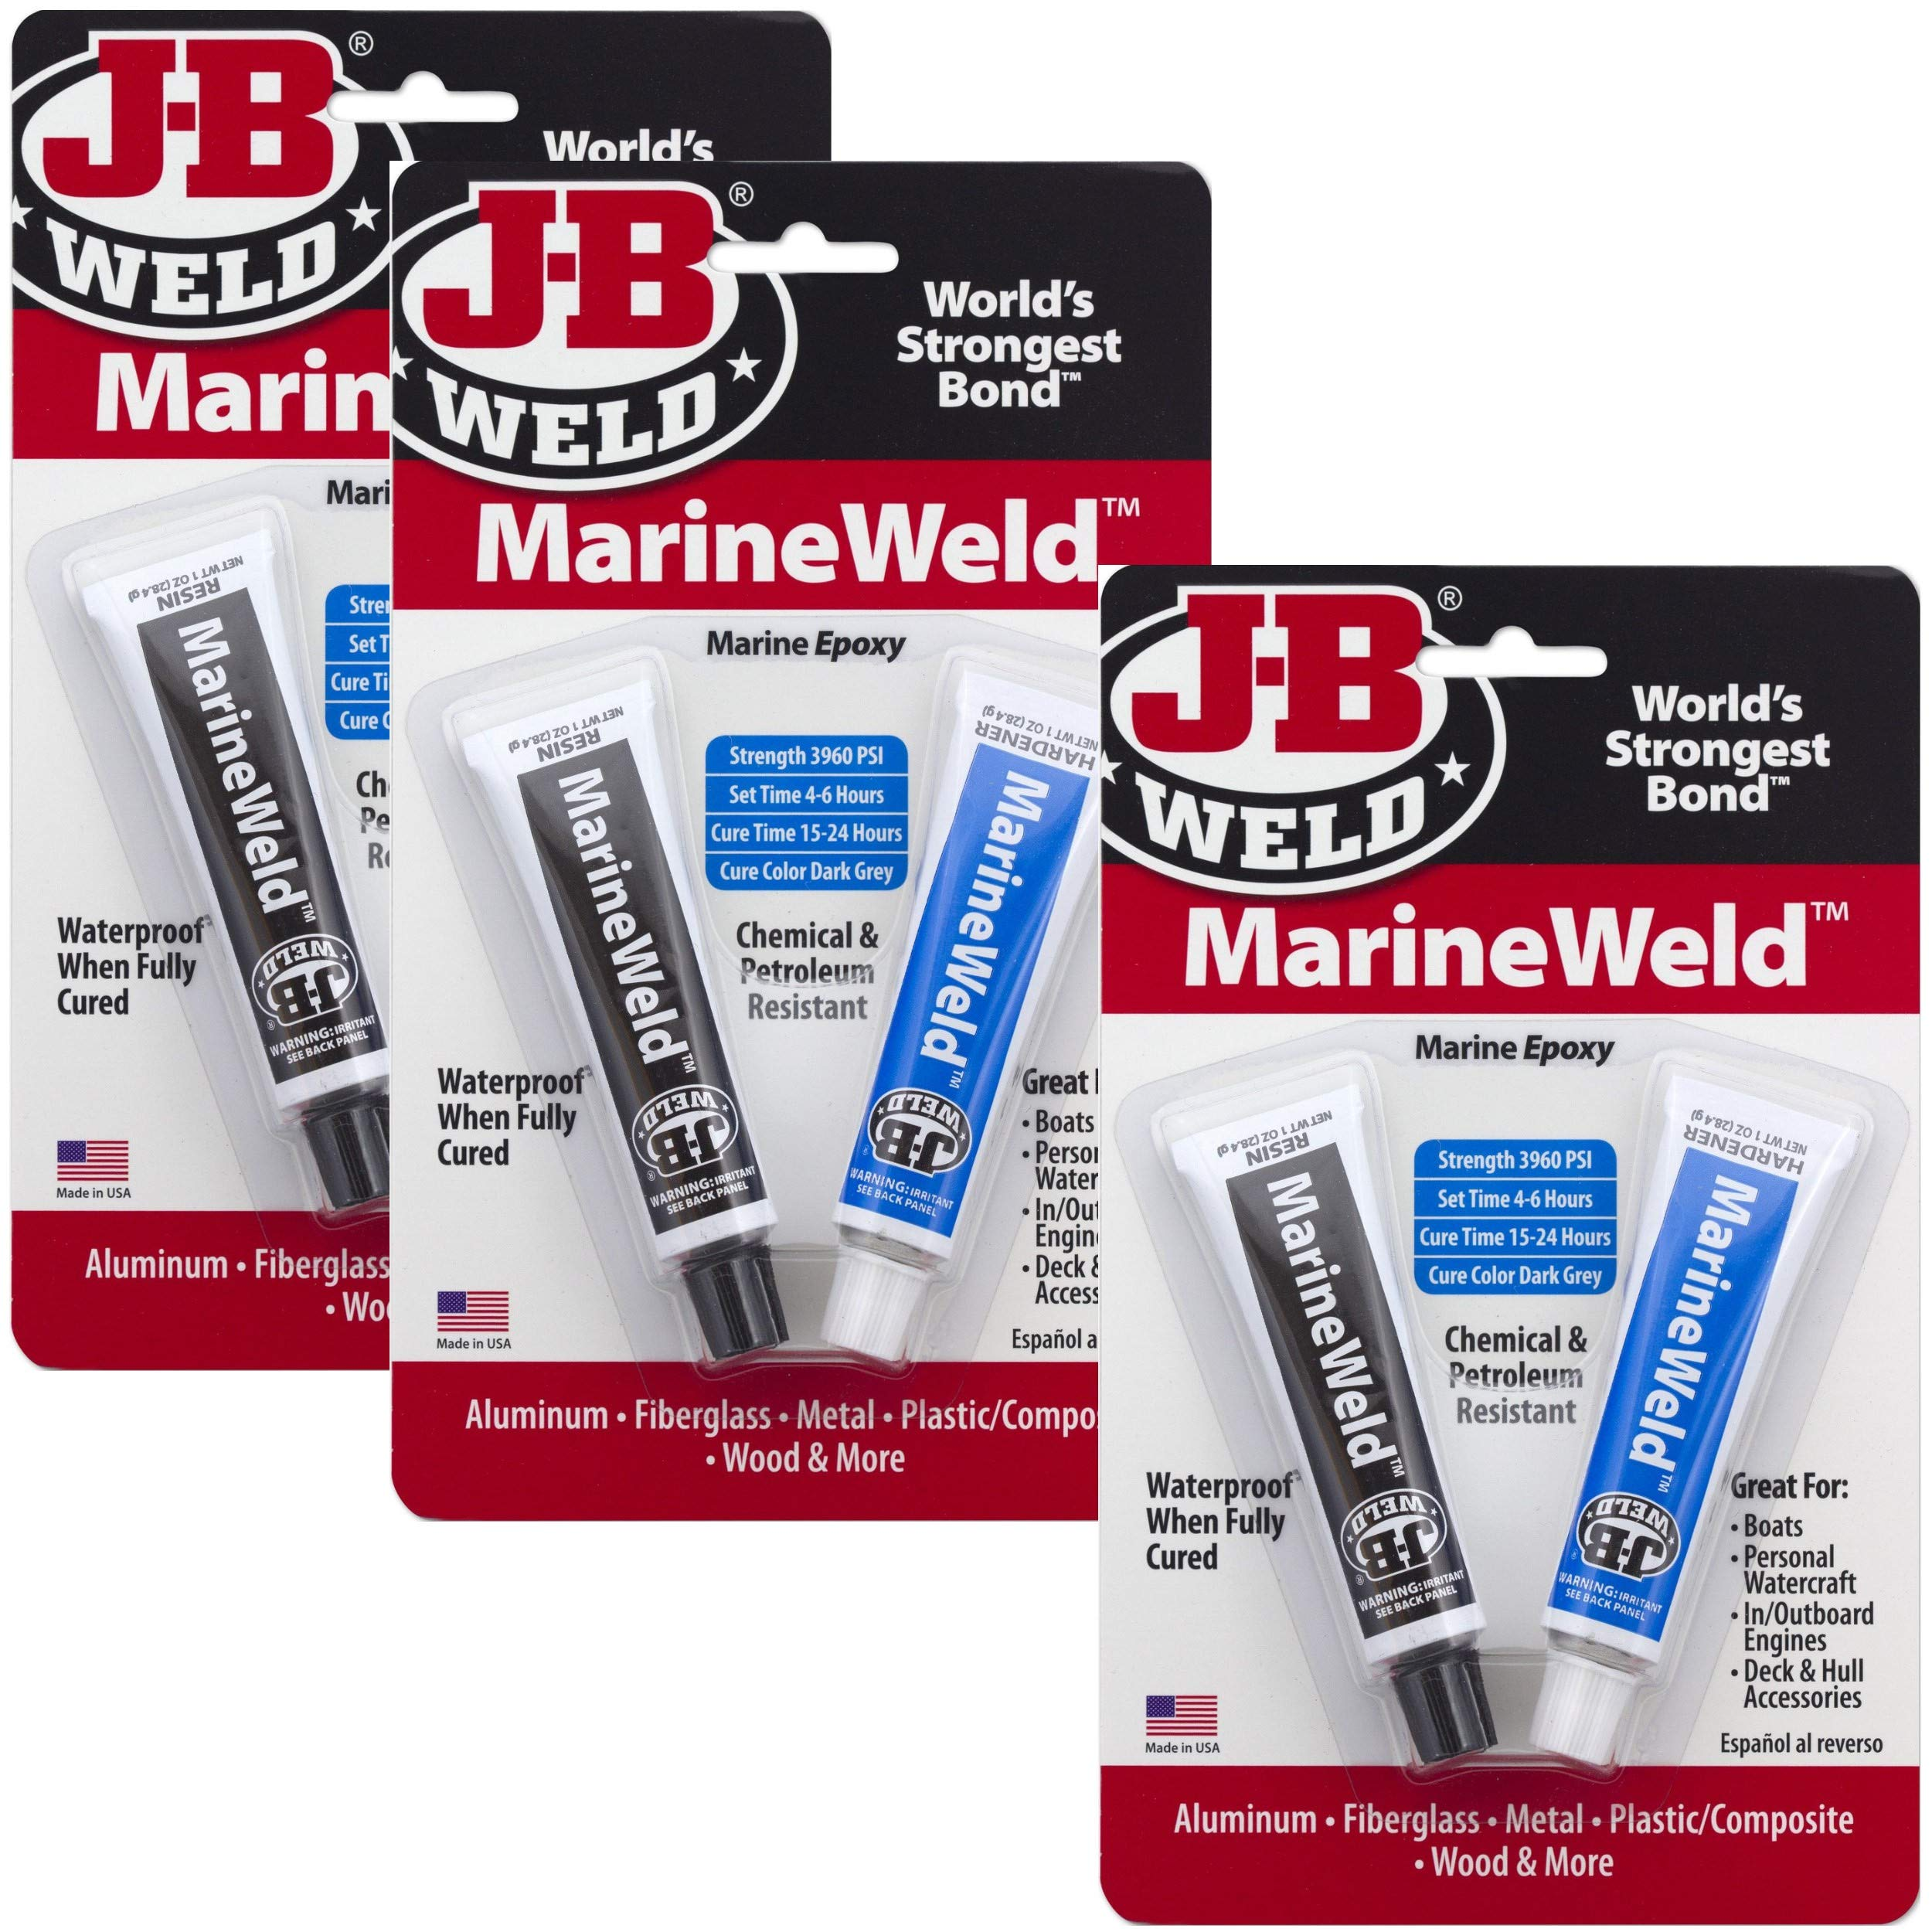 J-B Weld 8272 MarineWeld Marine Epoxy - 2 oz, Pack of 3 product image